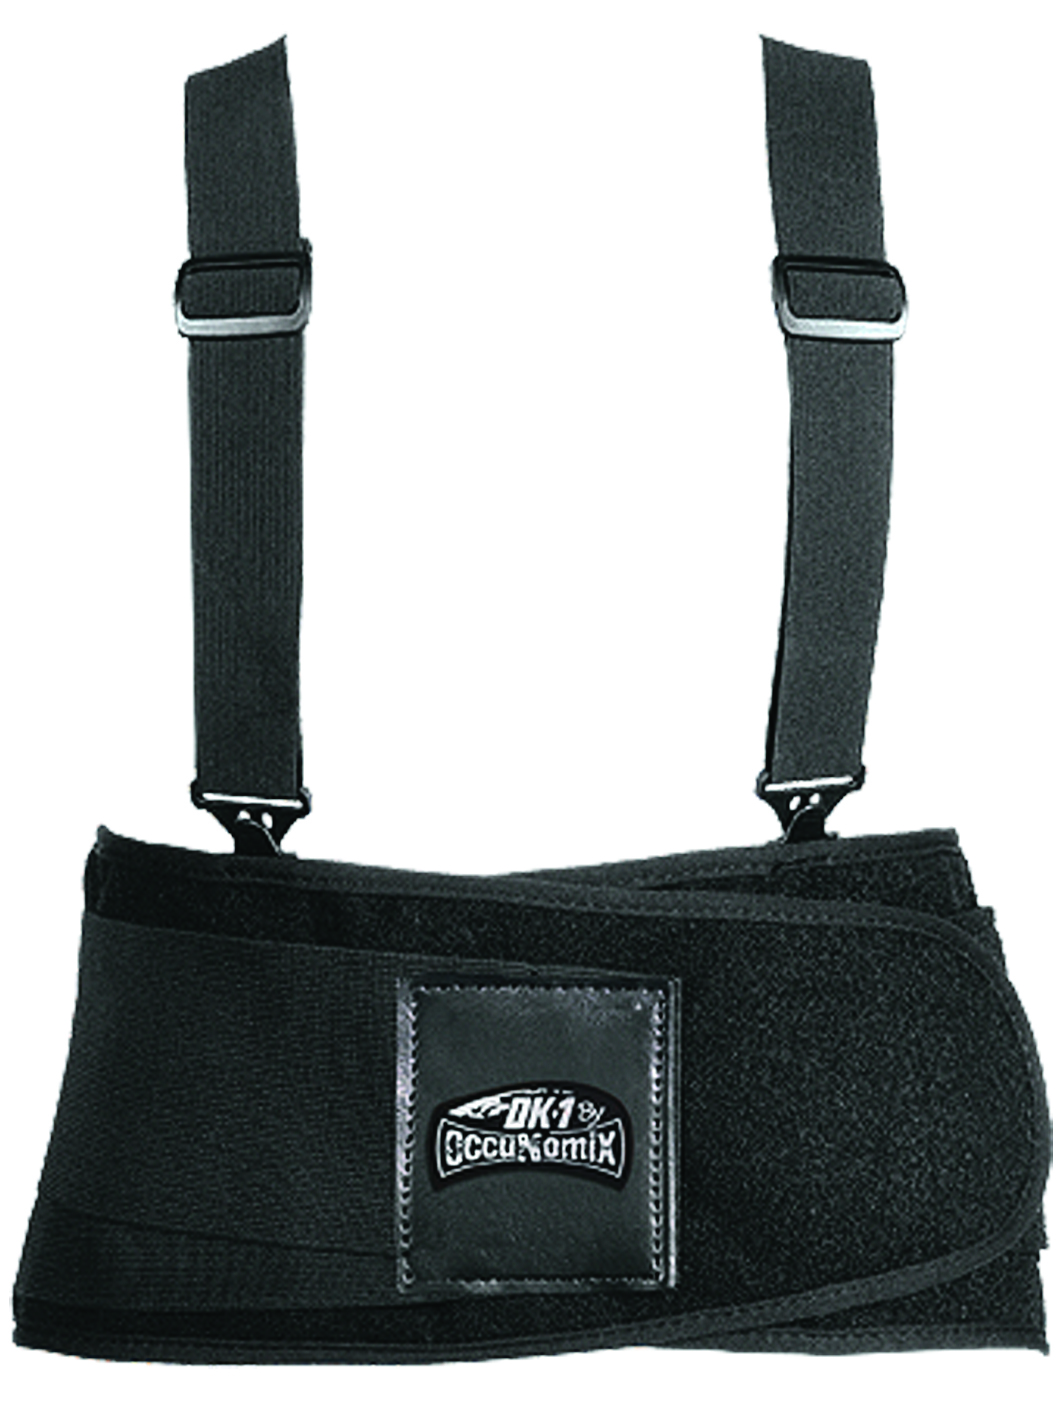 OK-UNIV - Classic Universal Back and Abs Support-Black-----UOM: 1/EA